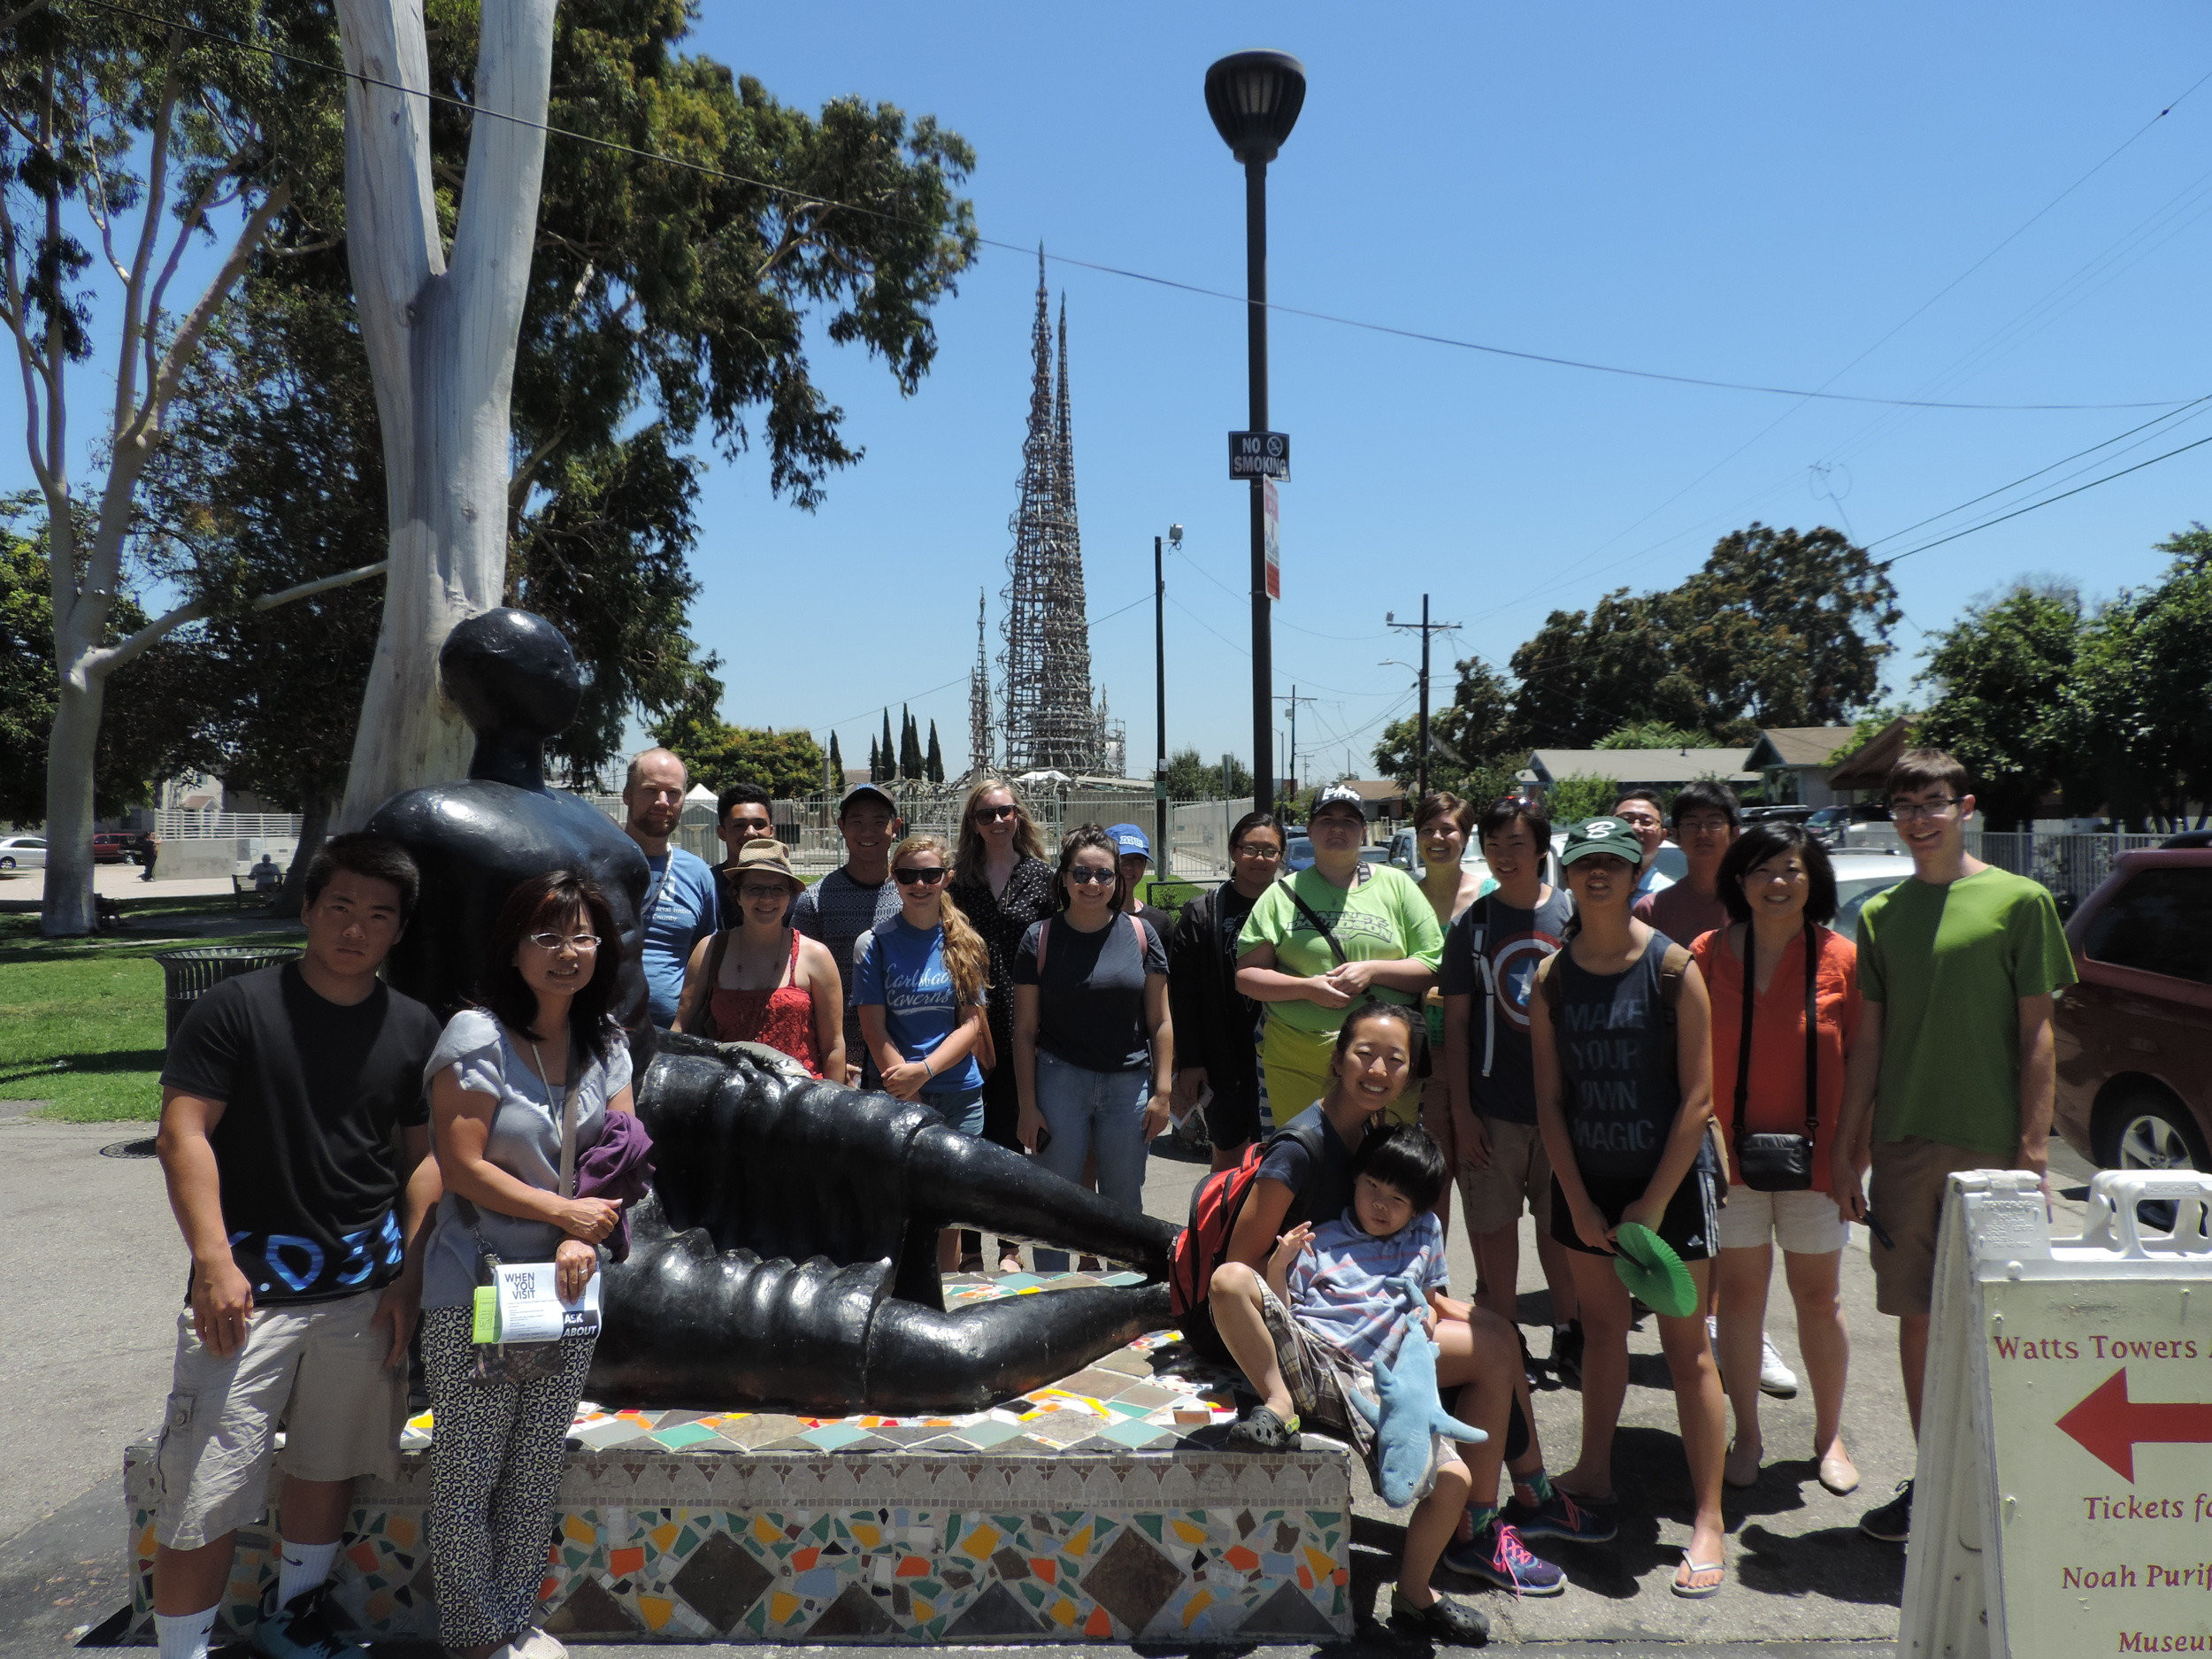 A group photo in front of the Watts Tower in South Central Los Angeles learning about the rich history of LA